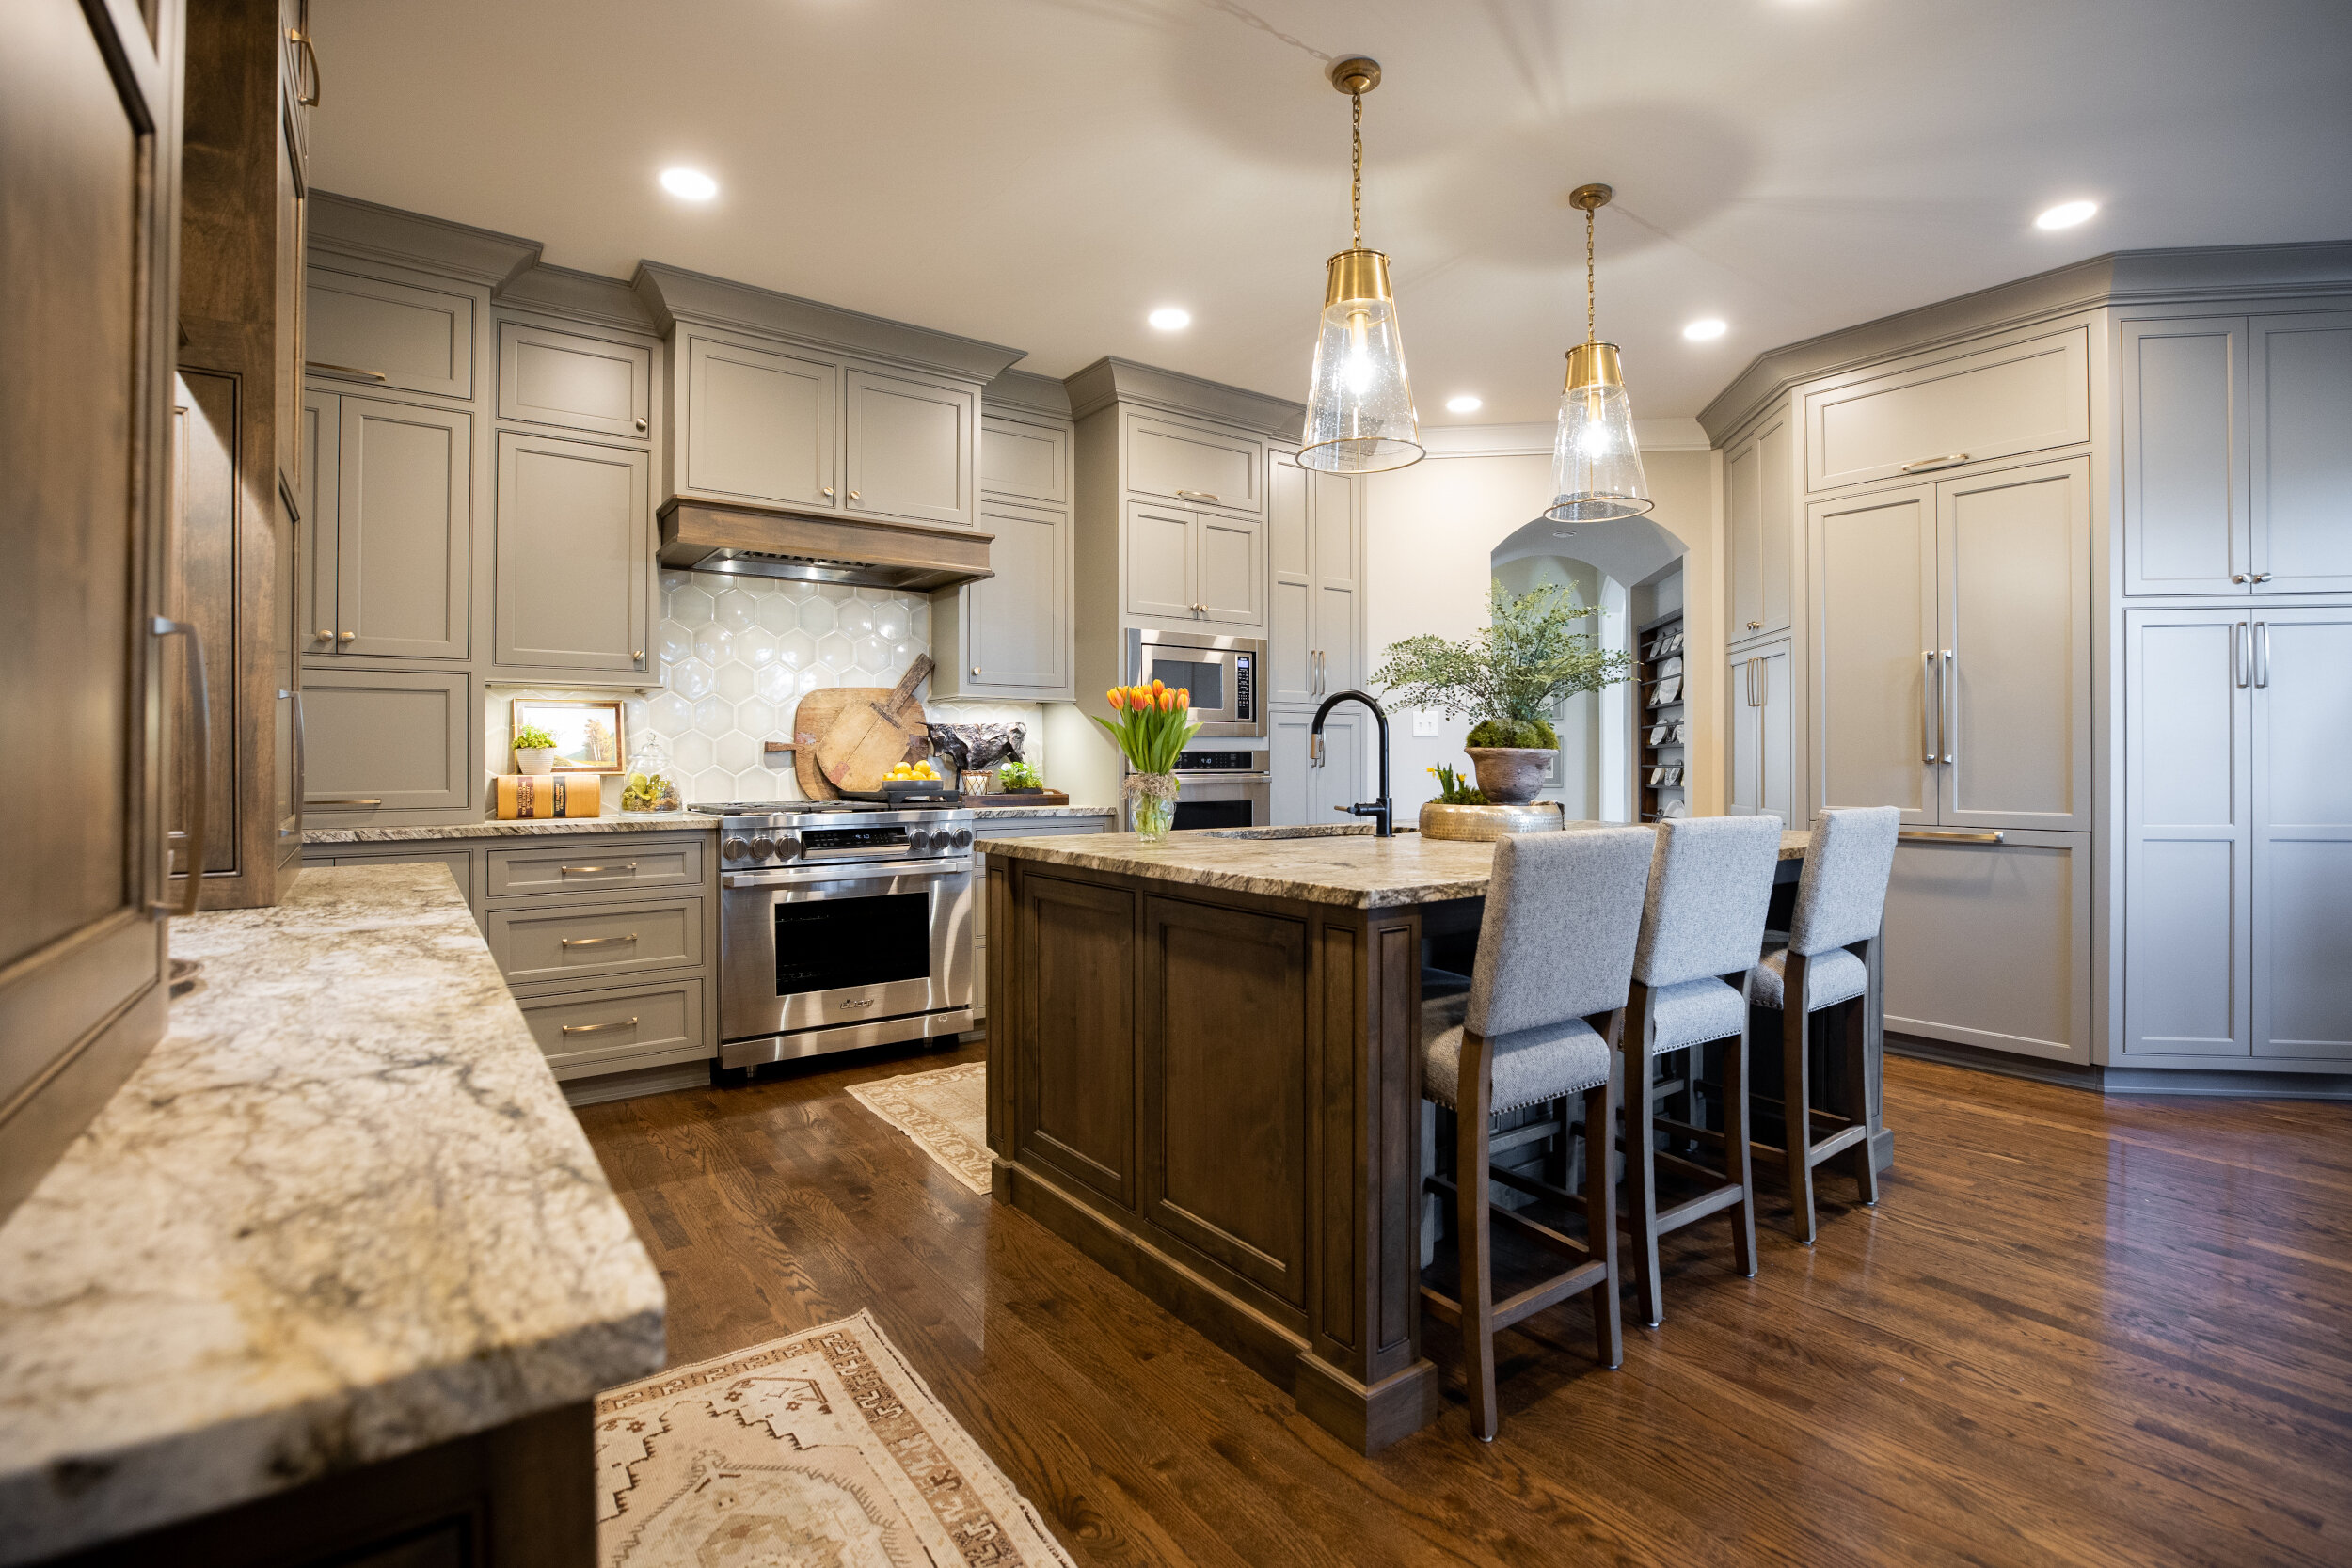 Keystone Kitchens Custom Cabinet Makers Carpenters And Remodeling Contractors Custom Kitchen Bathroom Cabinets Custom Closets Kitchen Bathroom Remodels Cabinet Companies In Knoxville Tn Serving